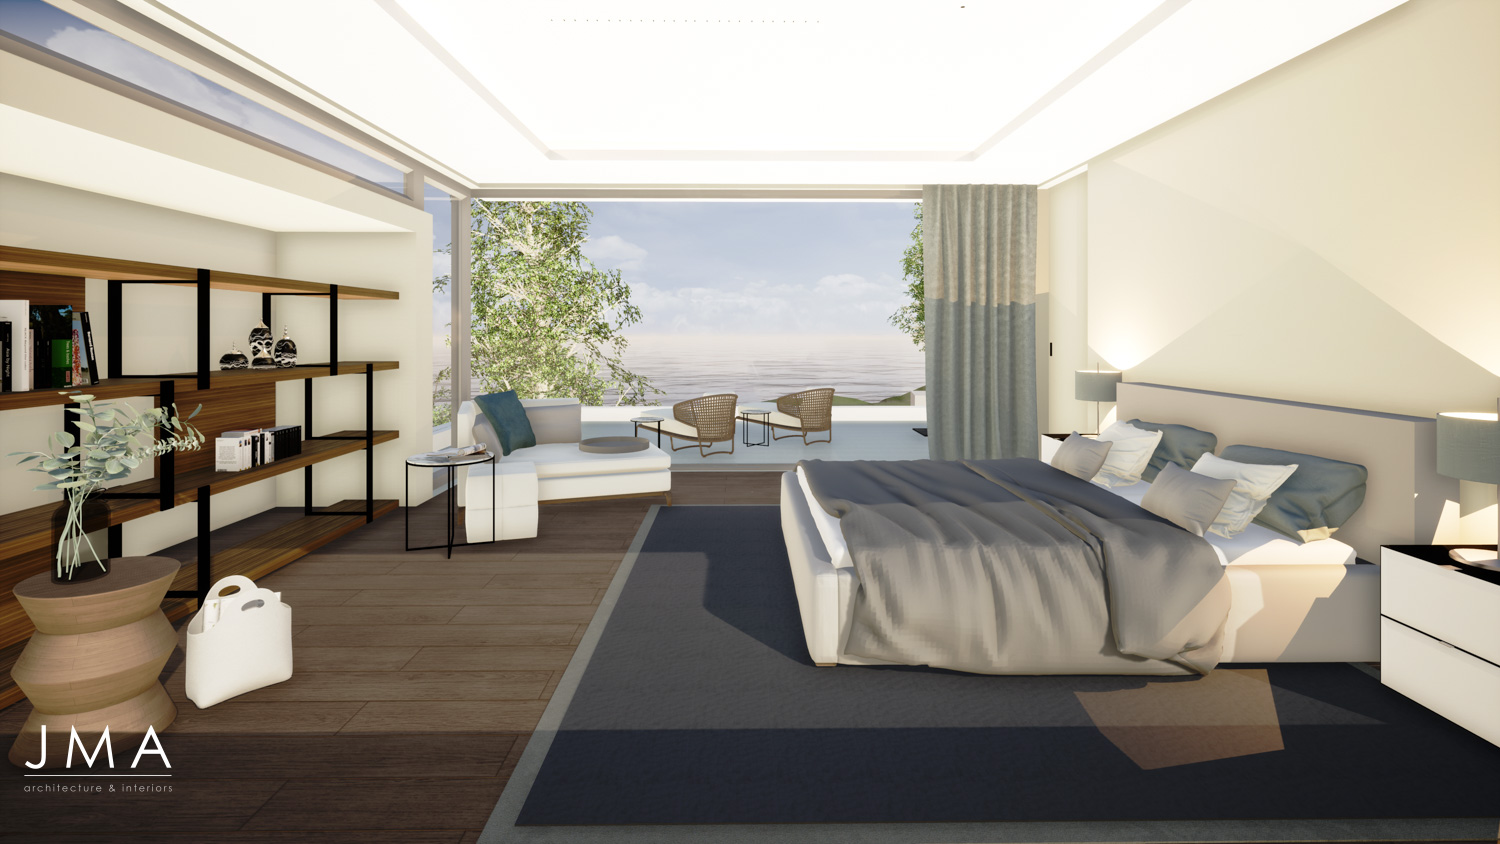 Render of a Campsbay Development of a Upper Unit Bedroom by Jenny Mills Architects